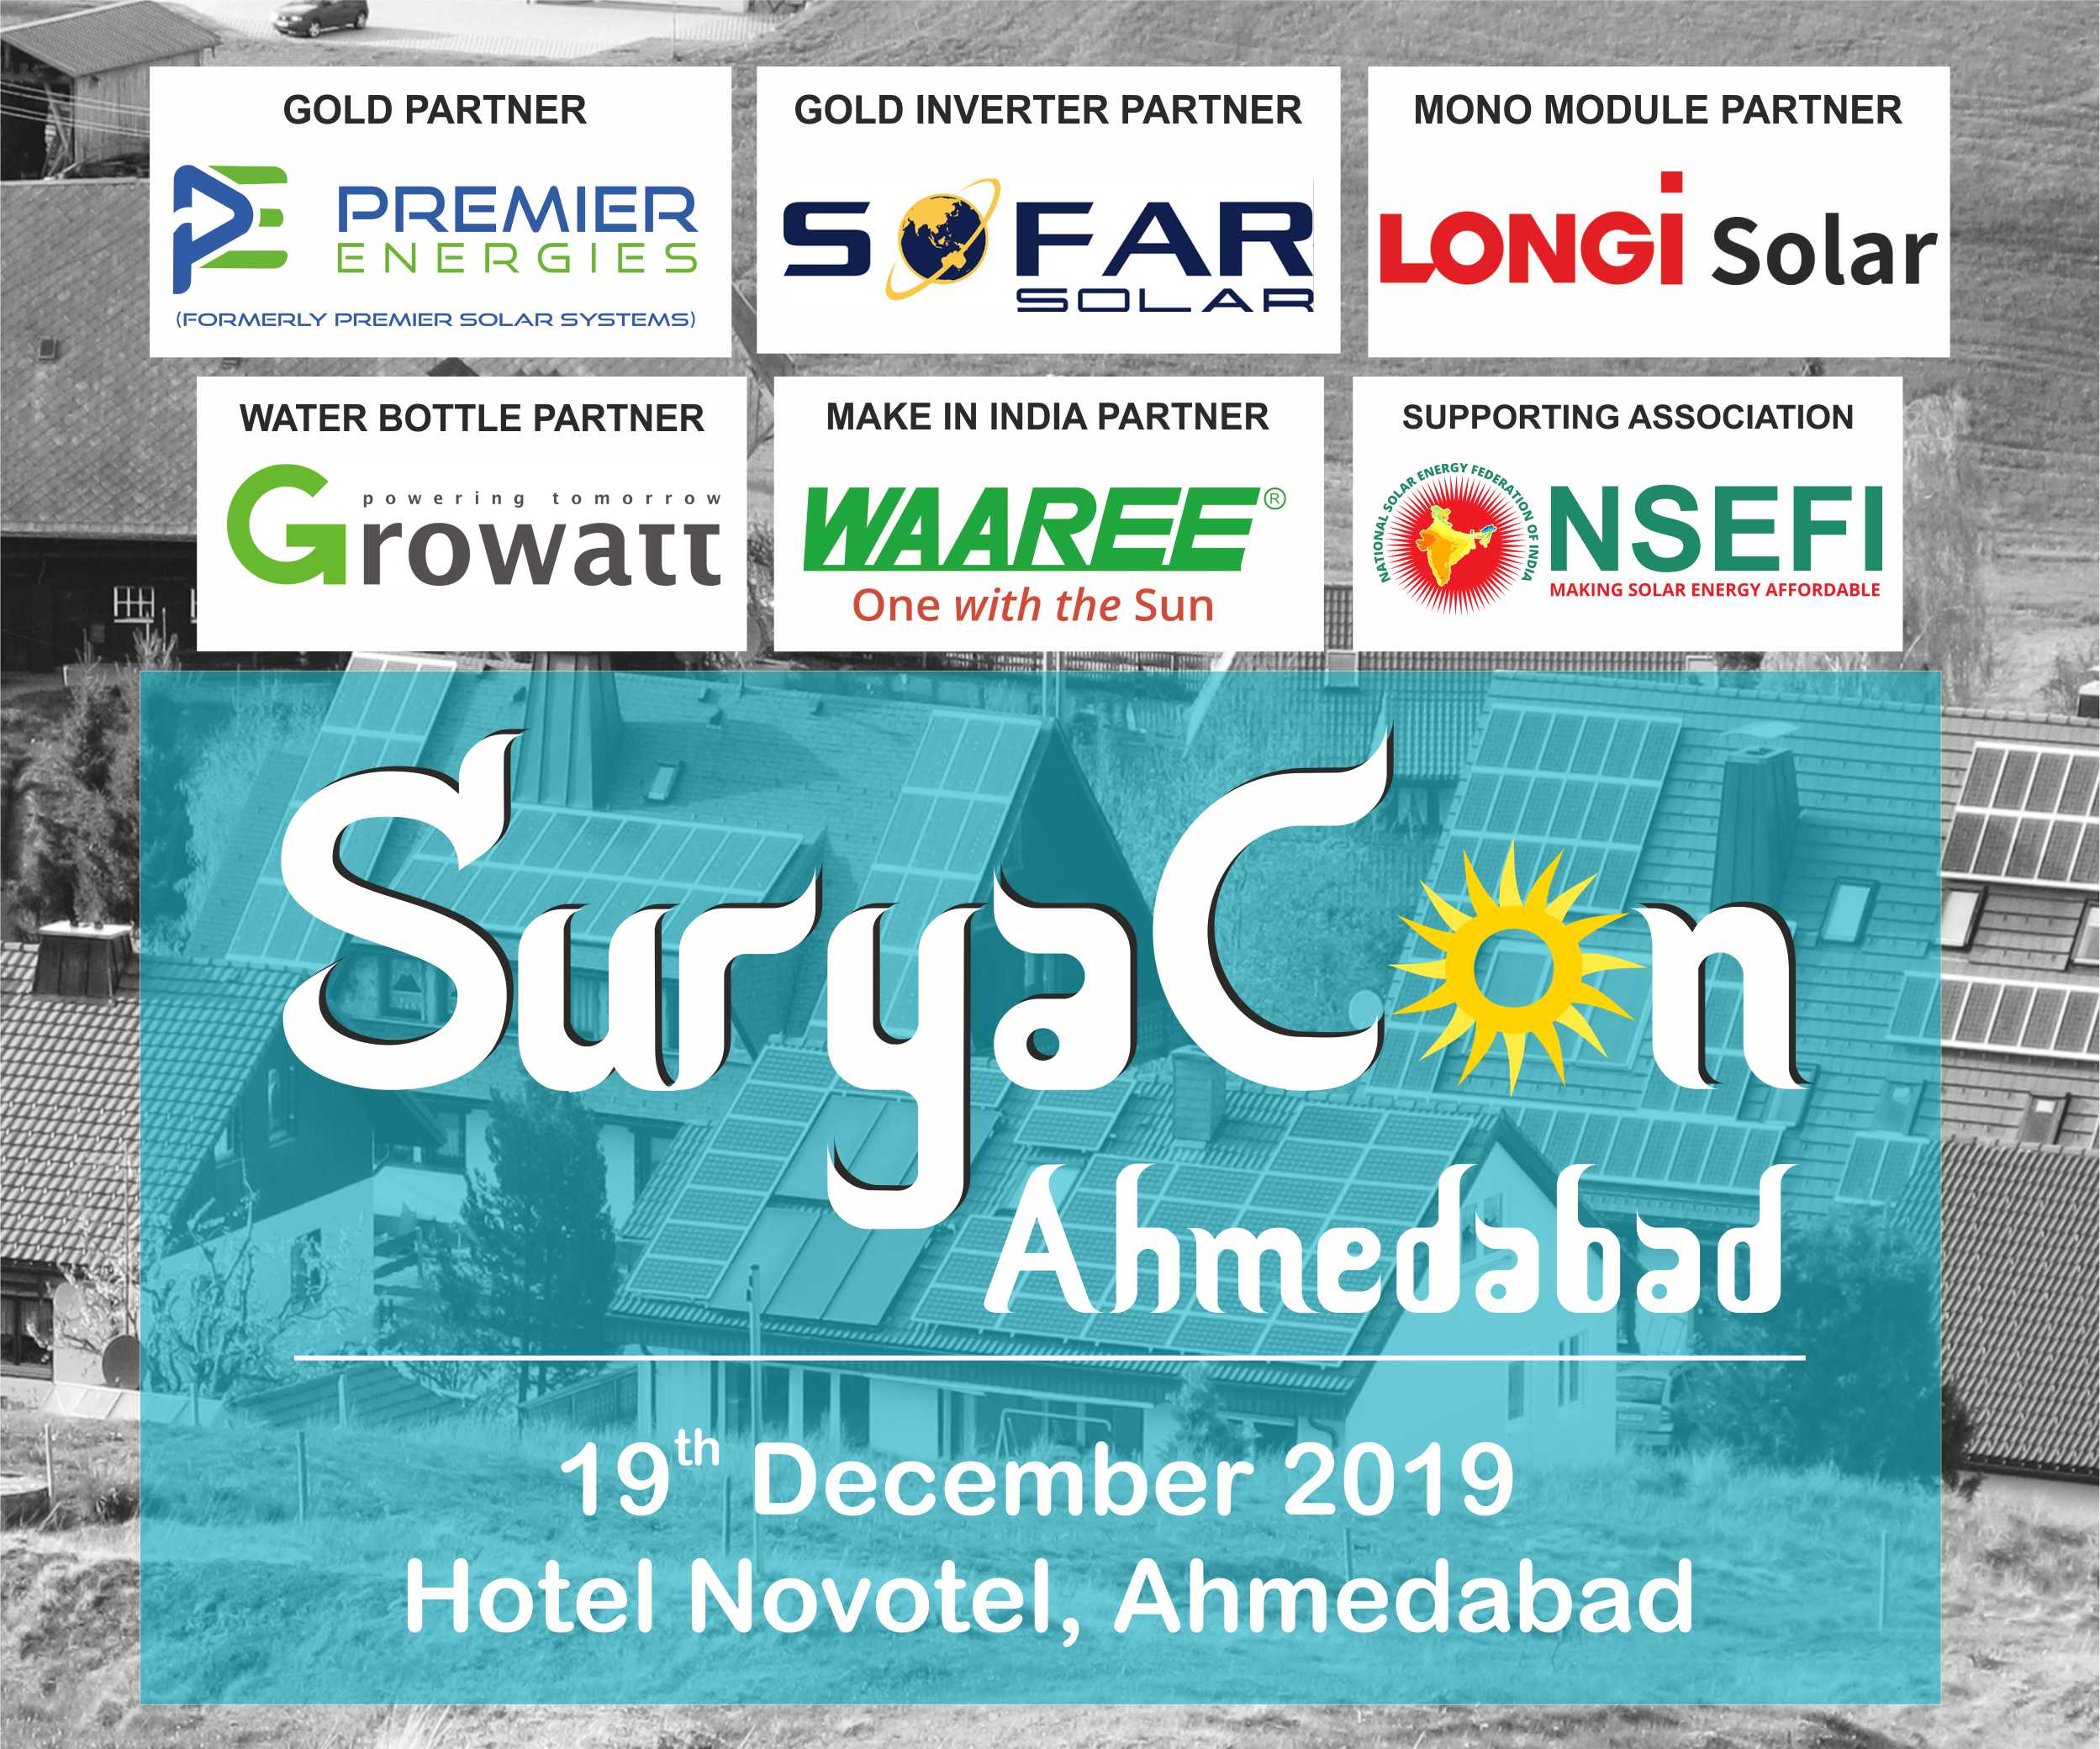 Ahmedabad EQ – Suryacon Conference on December 19, 2019 at Hotel Novotel, Ahmedabad